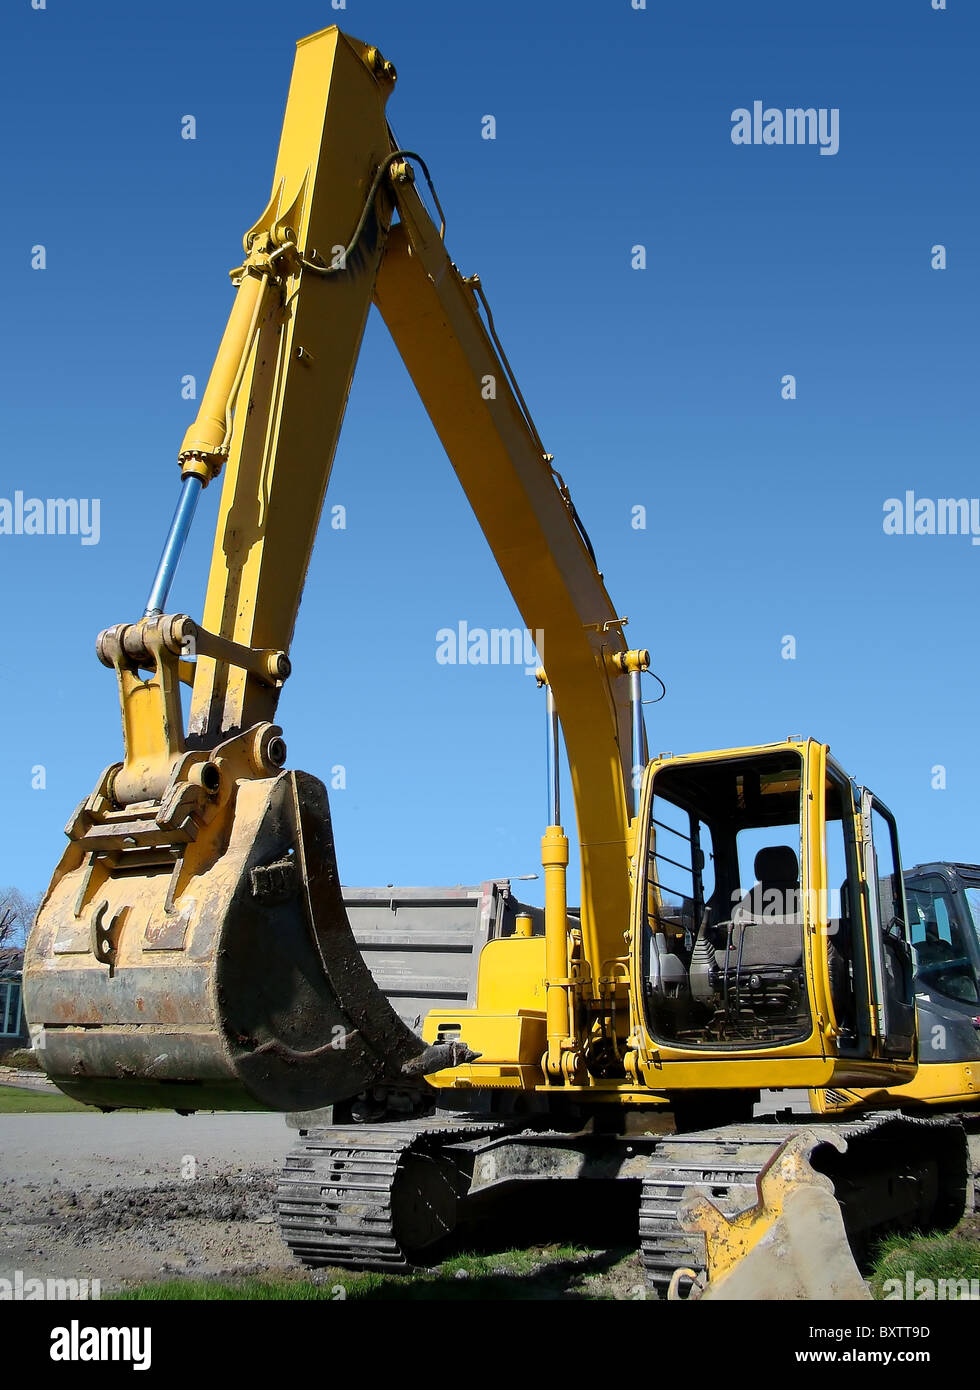 Vertical of mechanical digger in real street urban job site setting contrasted by bright blue sky. - Stock Image